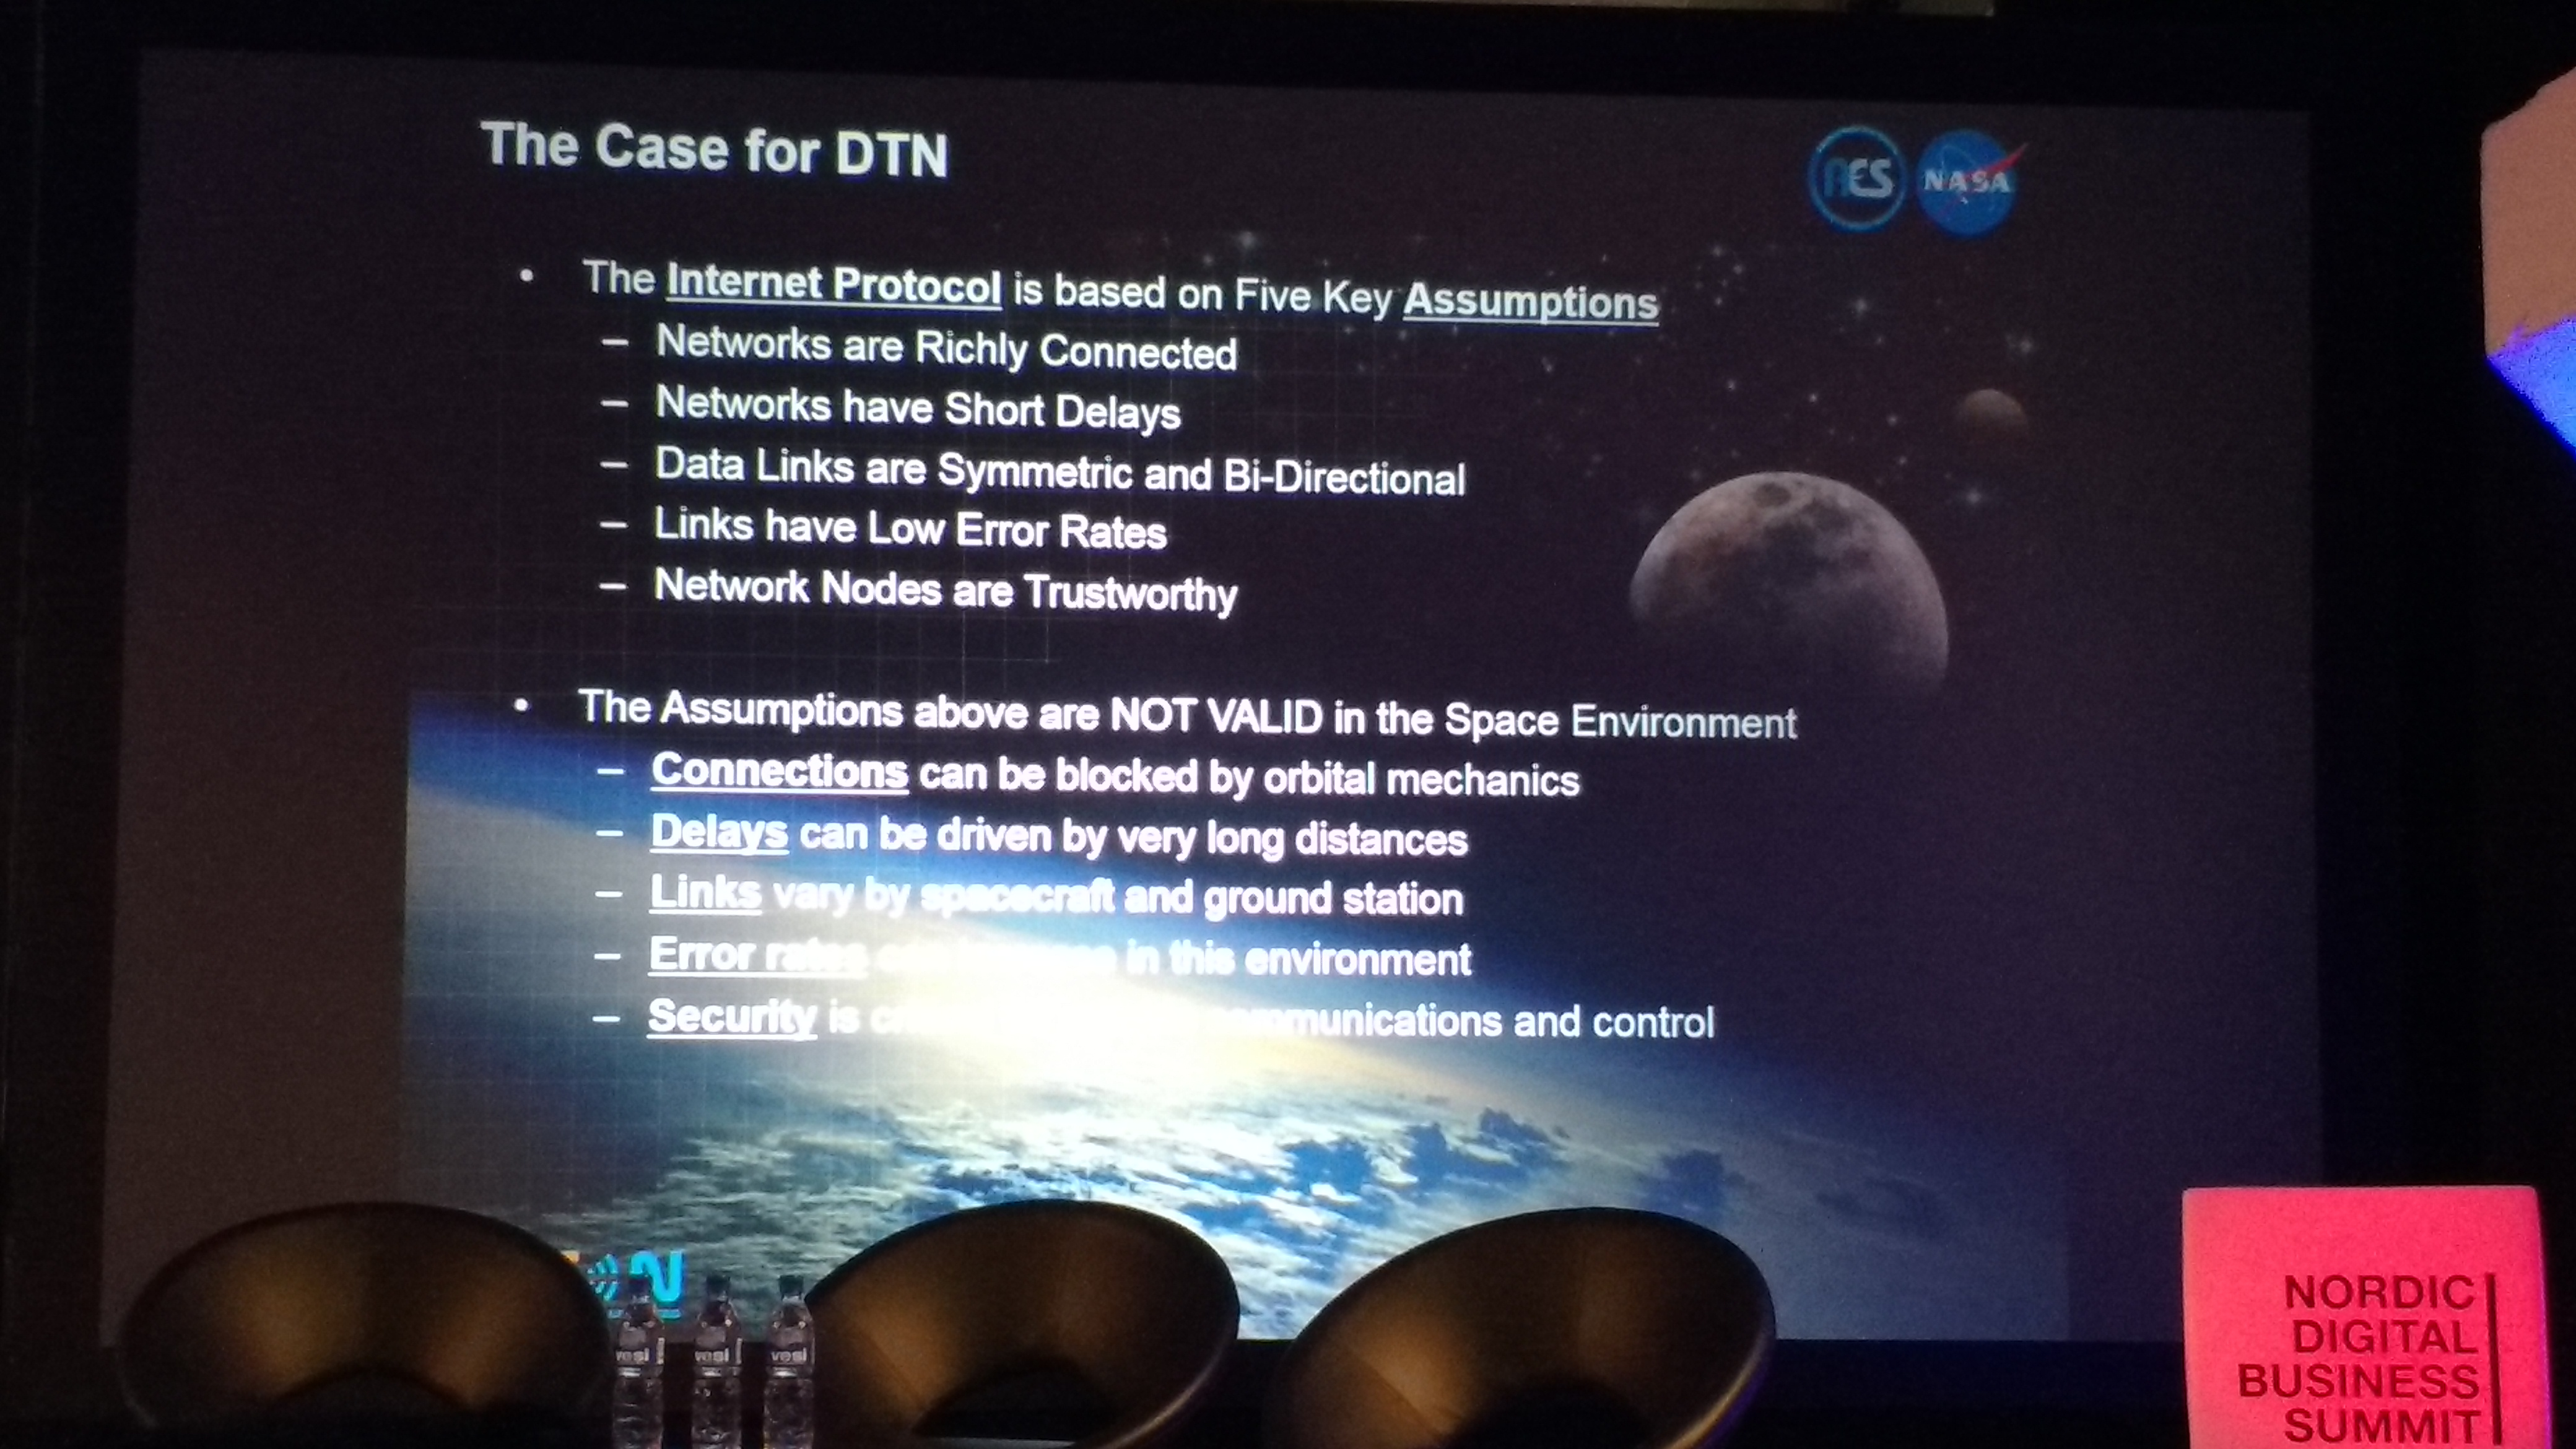 The Case for DTN